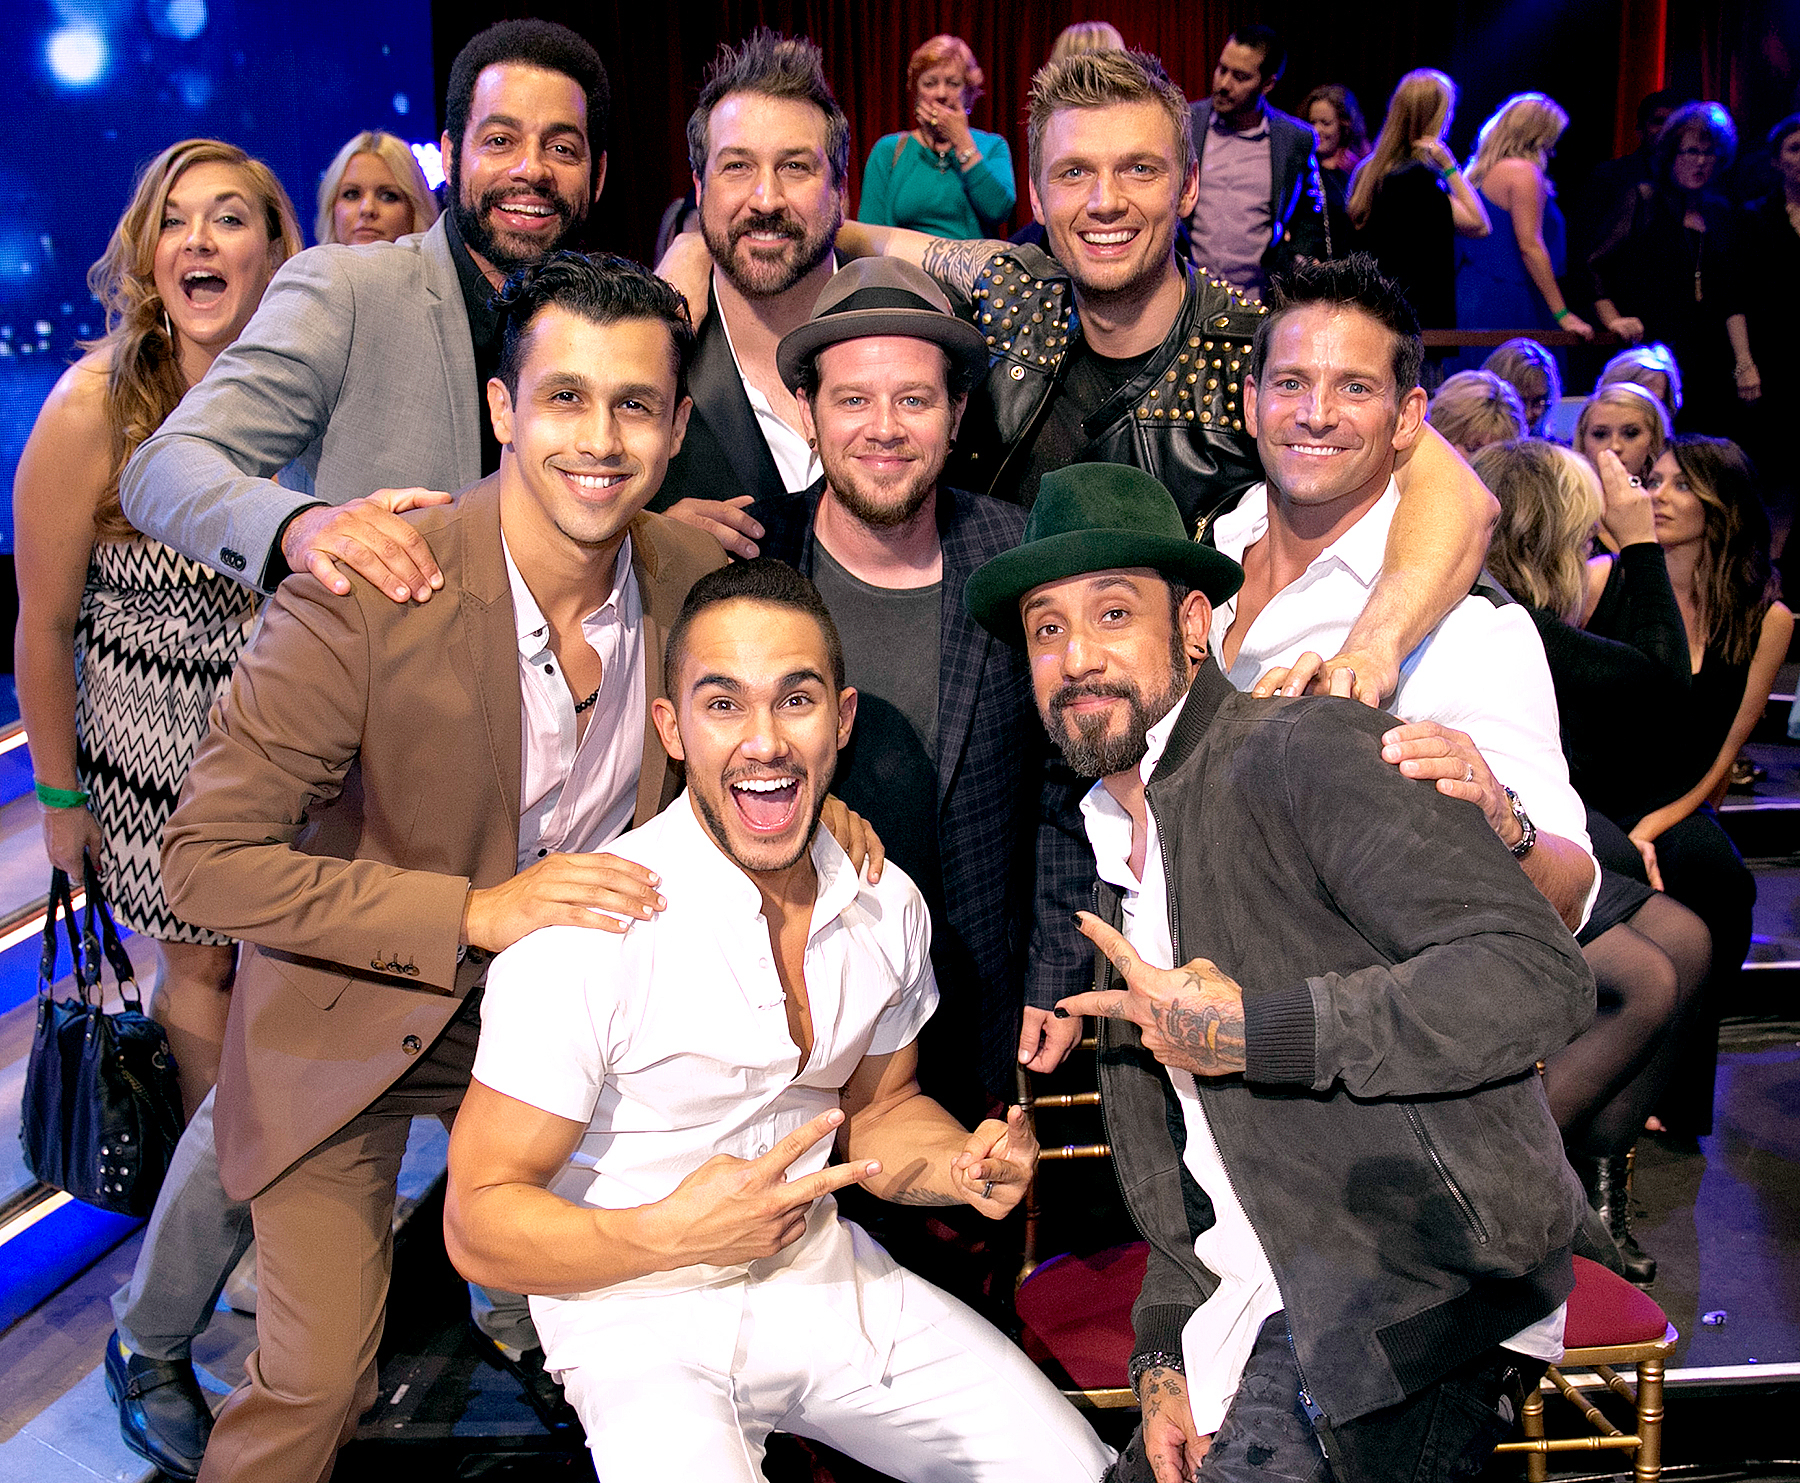 (Clockwise from top left to center) Trevor Penick (O-Town), Joey Fatone ('NSync), Nick Carter (Backstreet Boys), Jeff Timmons (98 Degrees), A.J. McLean (Backstreet Boys), Carlos Penavega (Big Time Rush), Erik-Michael Estrada (O-Town), Jacob Underwood (O-Town)